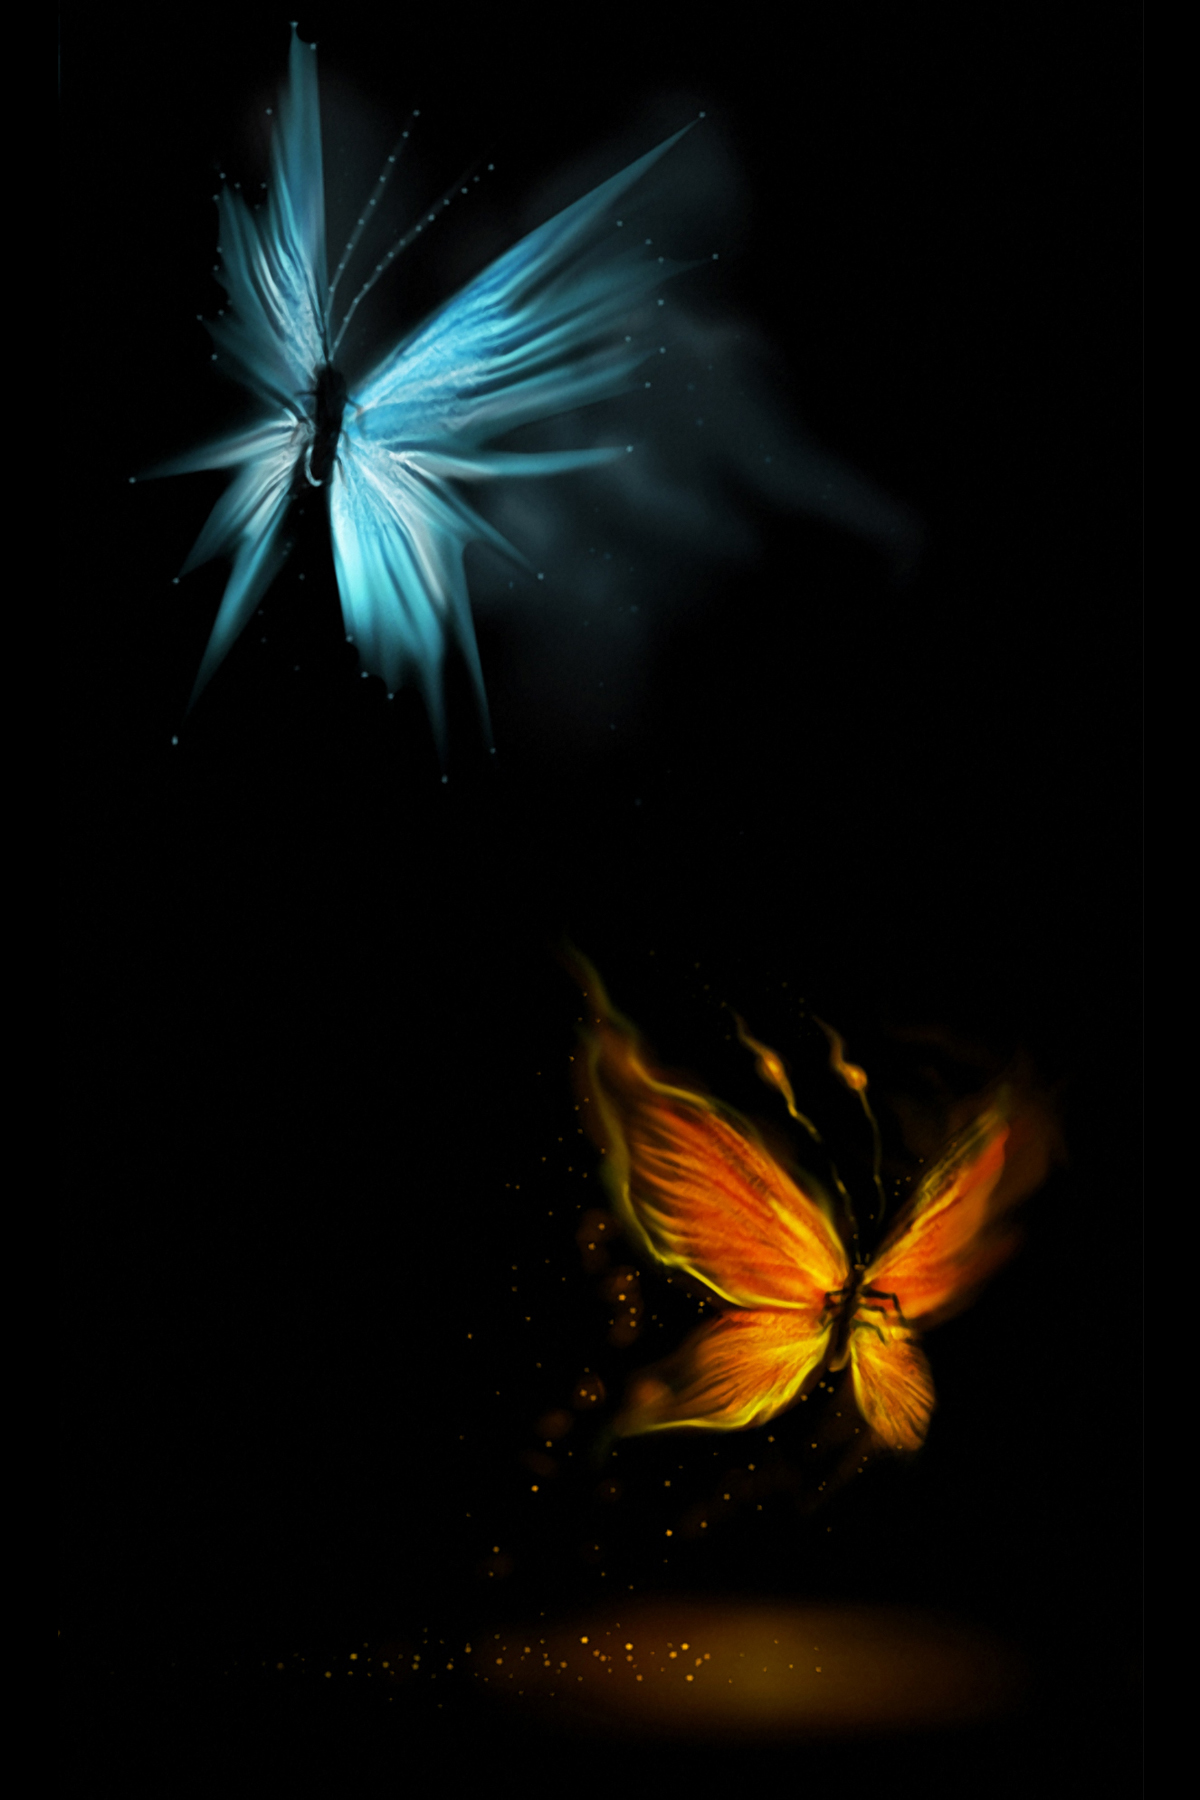 beautiful glowing butterflies android wallpaper download your screen size 1024 x 1024 recommended download original